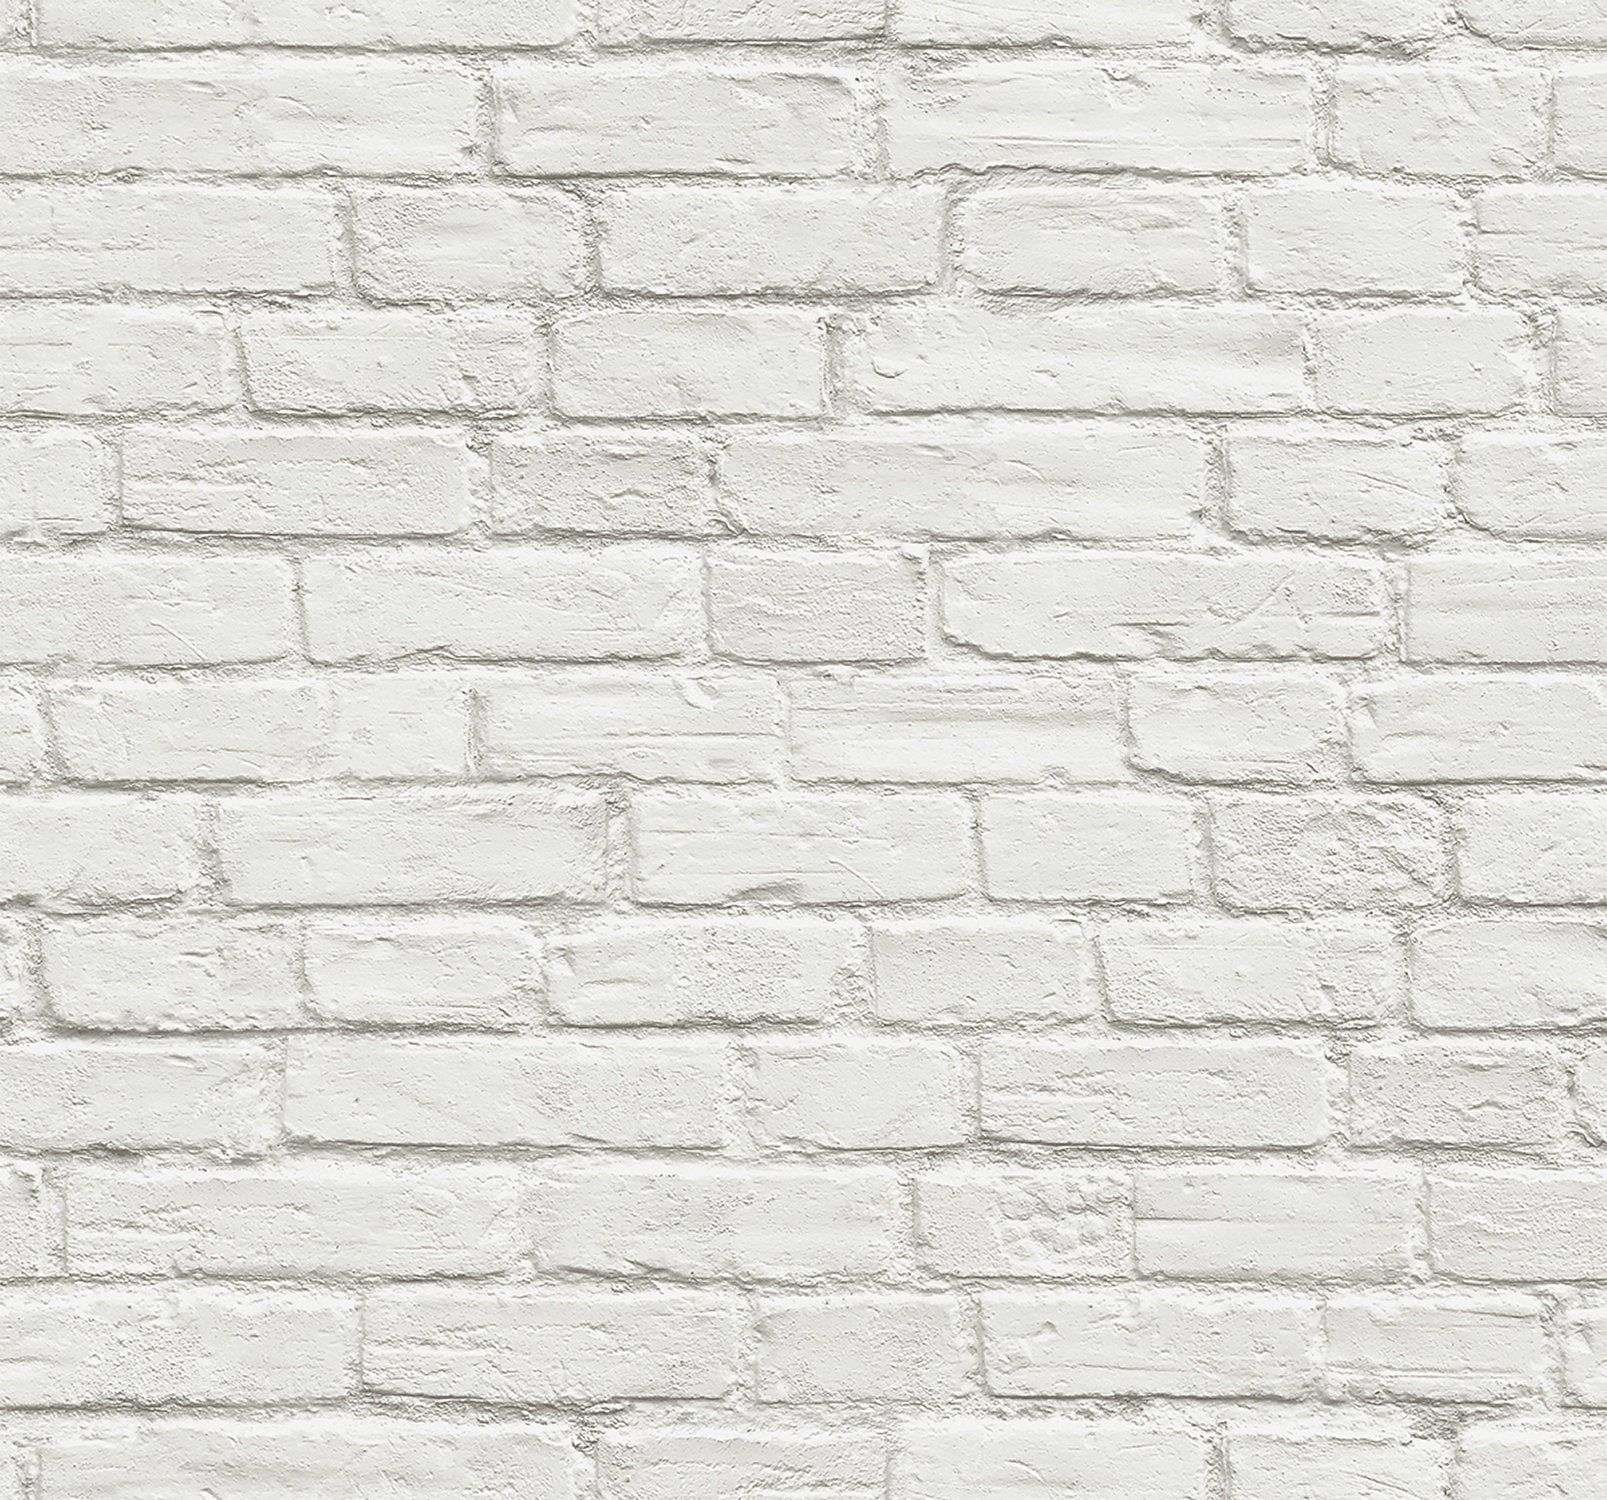 Peel And Stick Self Adhesive Wallpaper Brick Peel And Etsy White Brick Wallpaper Removable Brick Wallpaper Brick Wallpaper